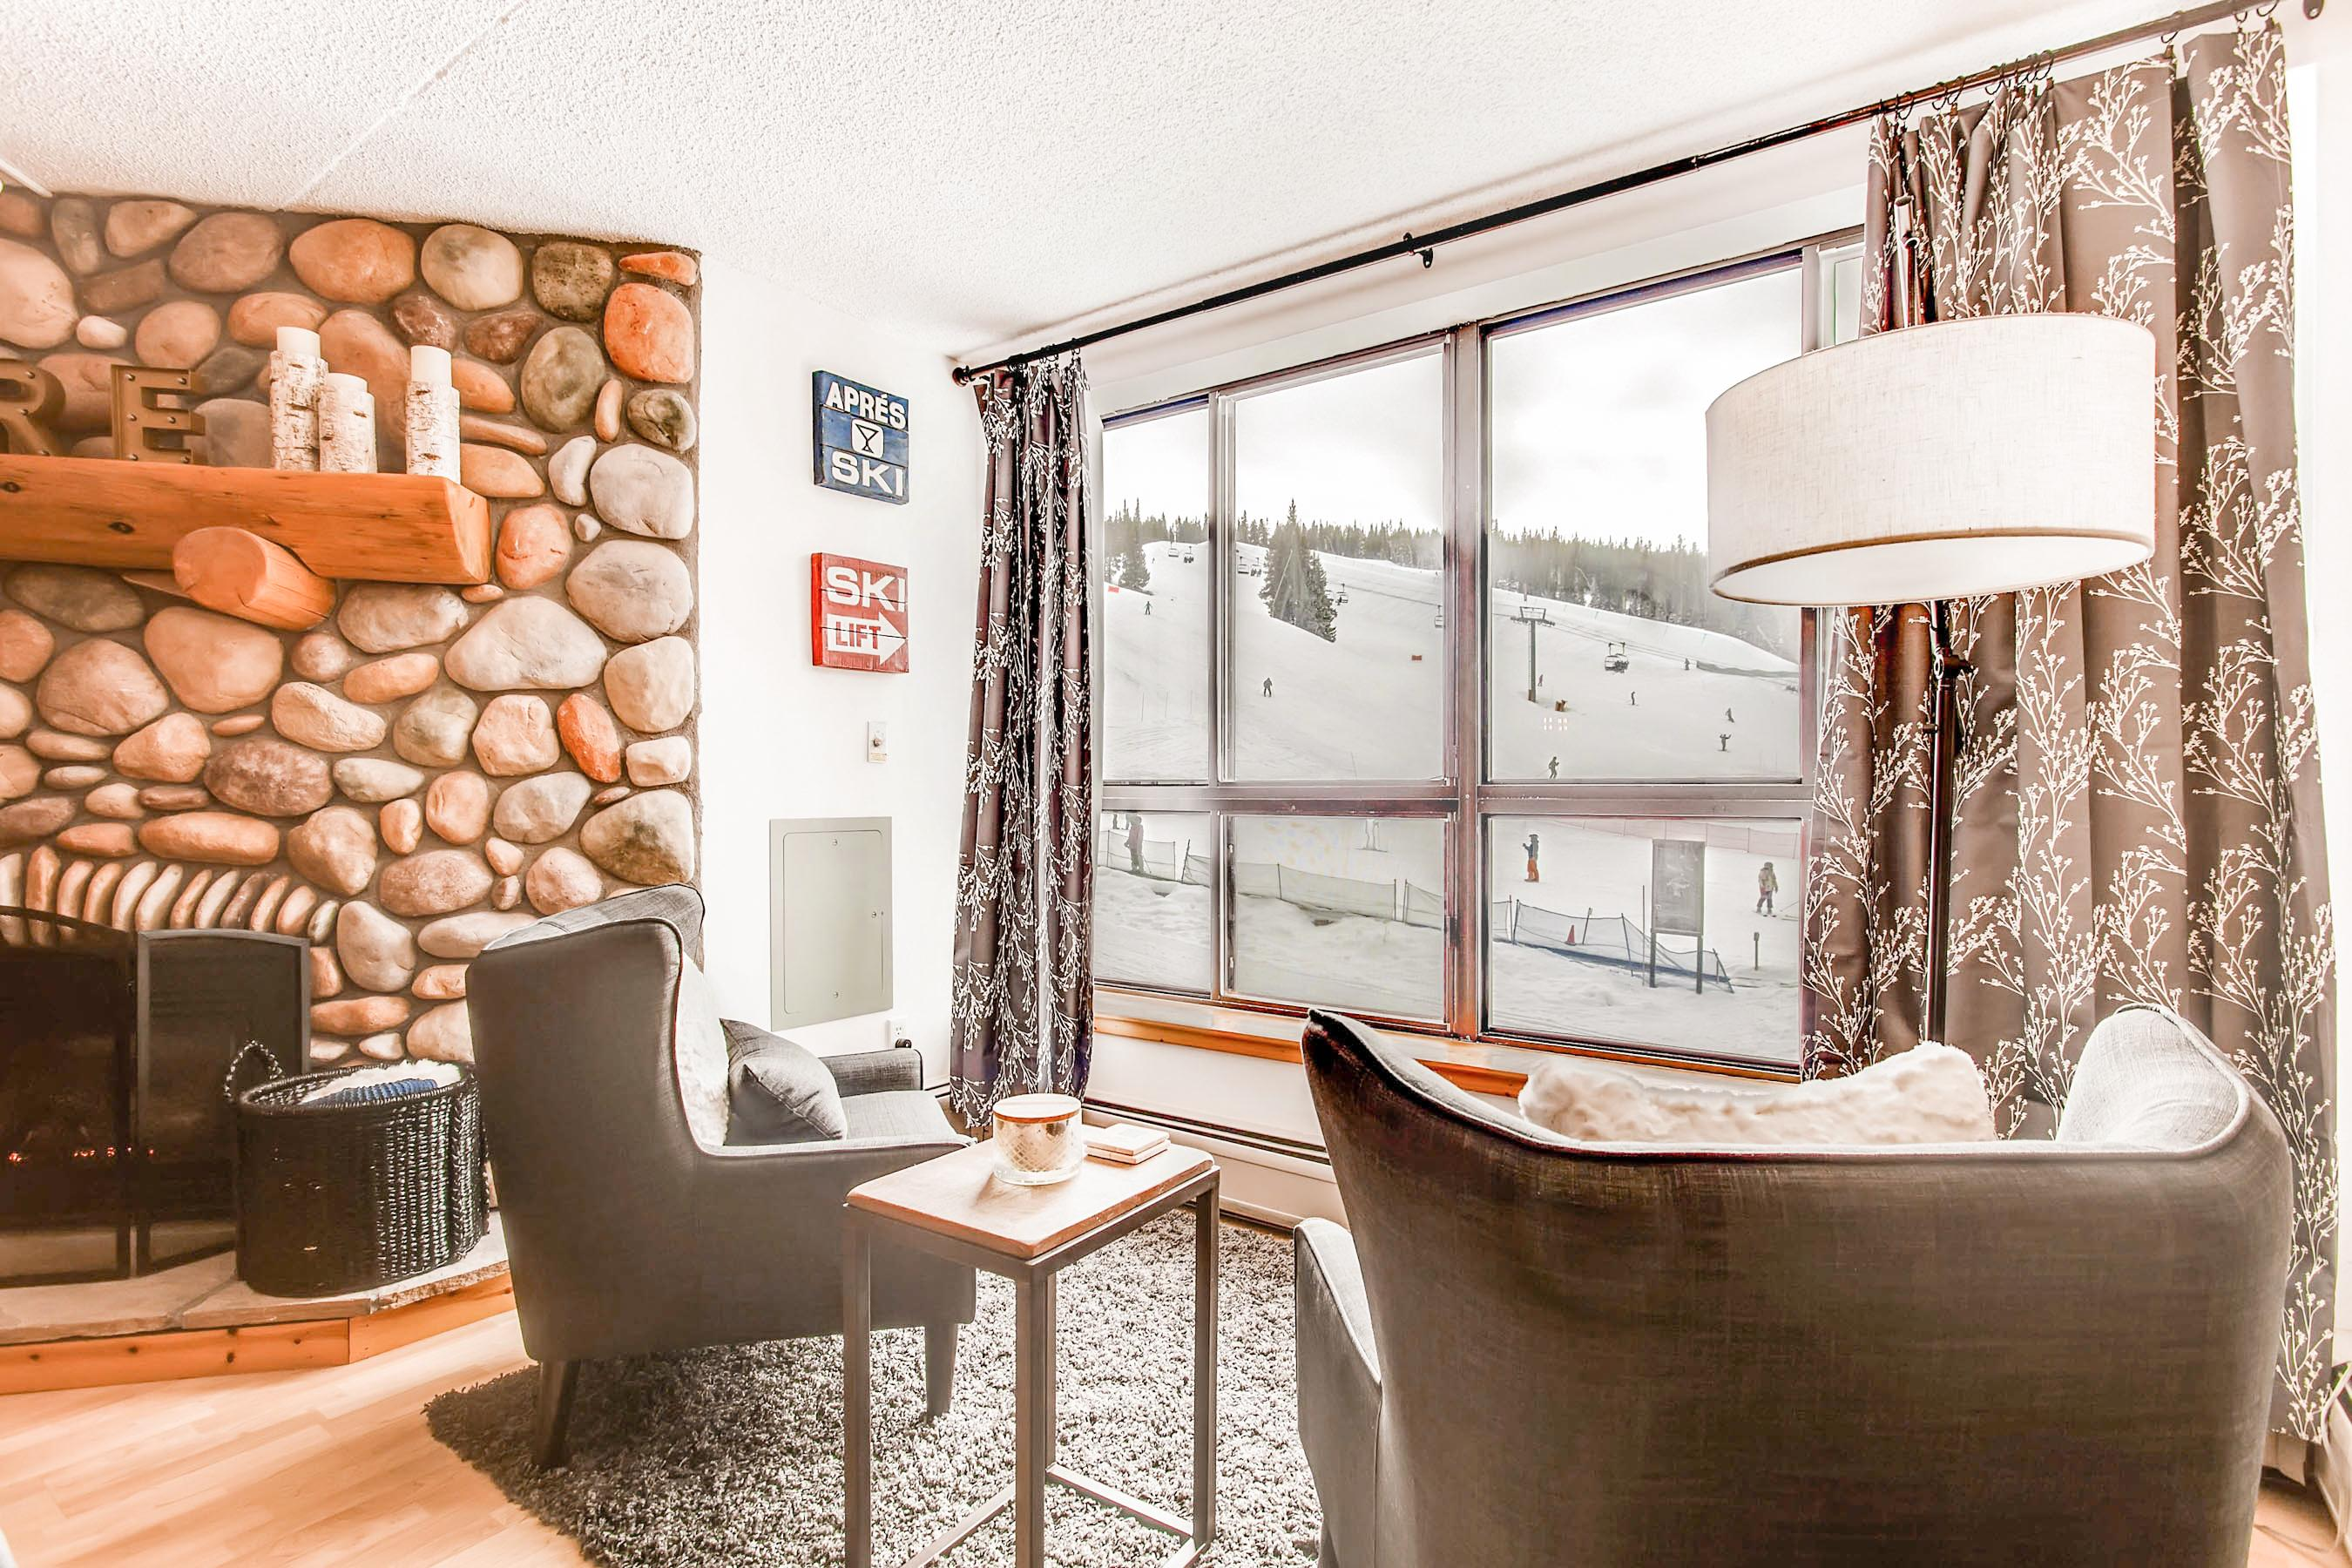 Take in the breathtaking mountain views from the comfort of your own living area.